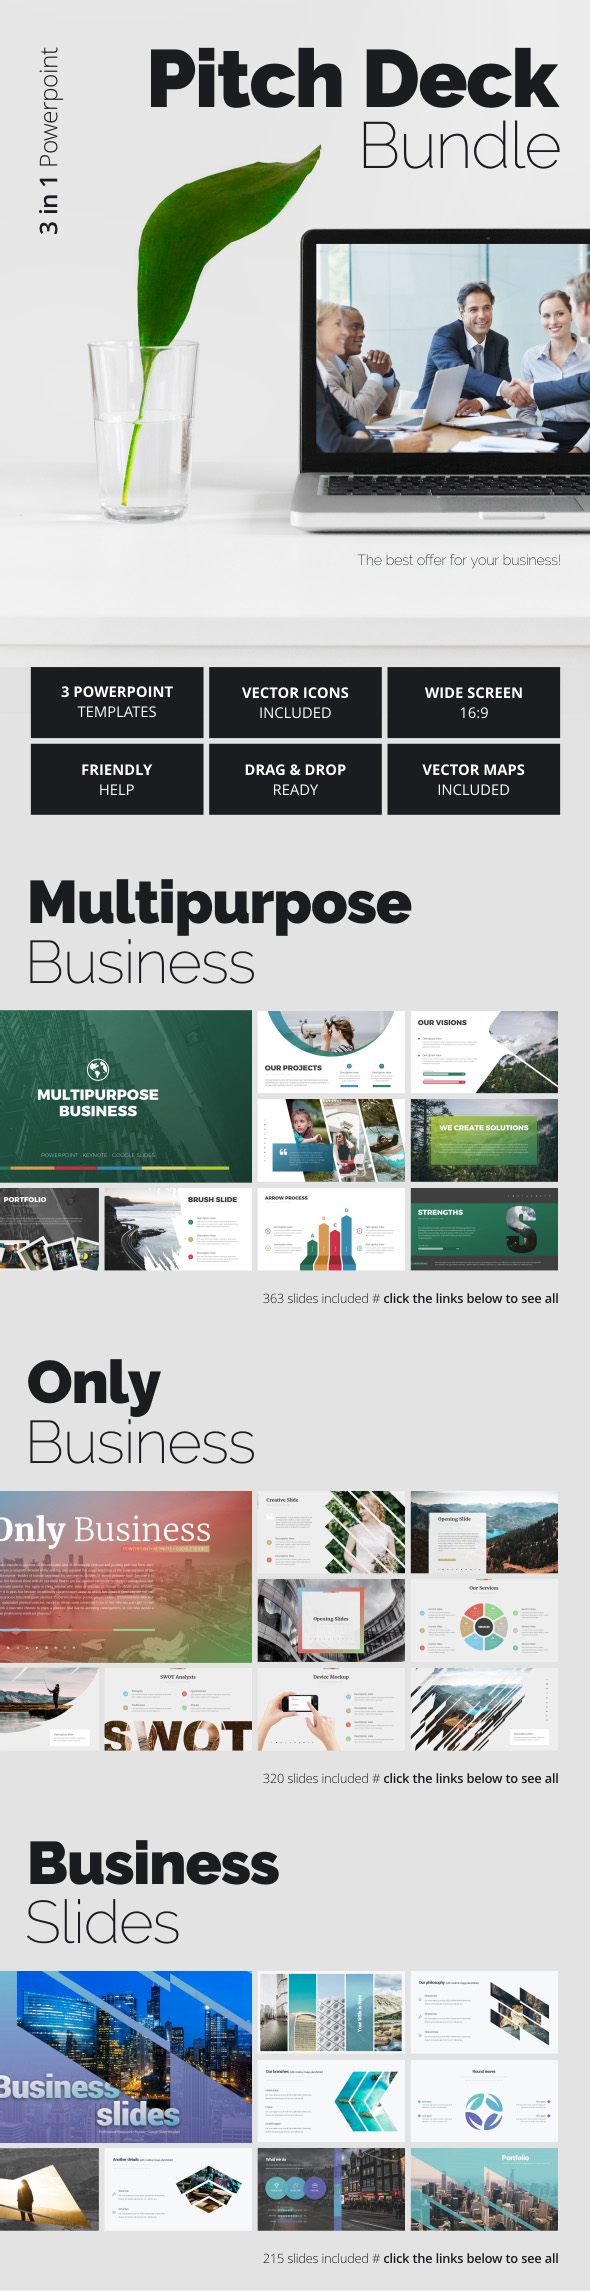 Pitch Deck Bundle - Pitch Deck PowerPoint Templates